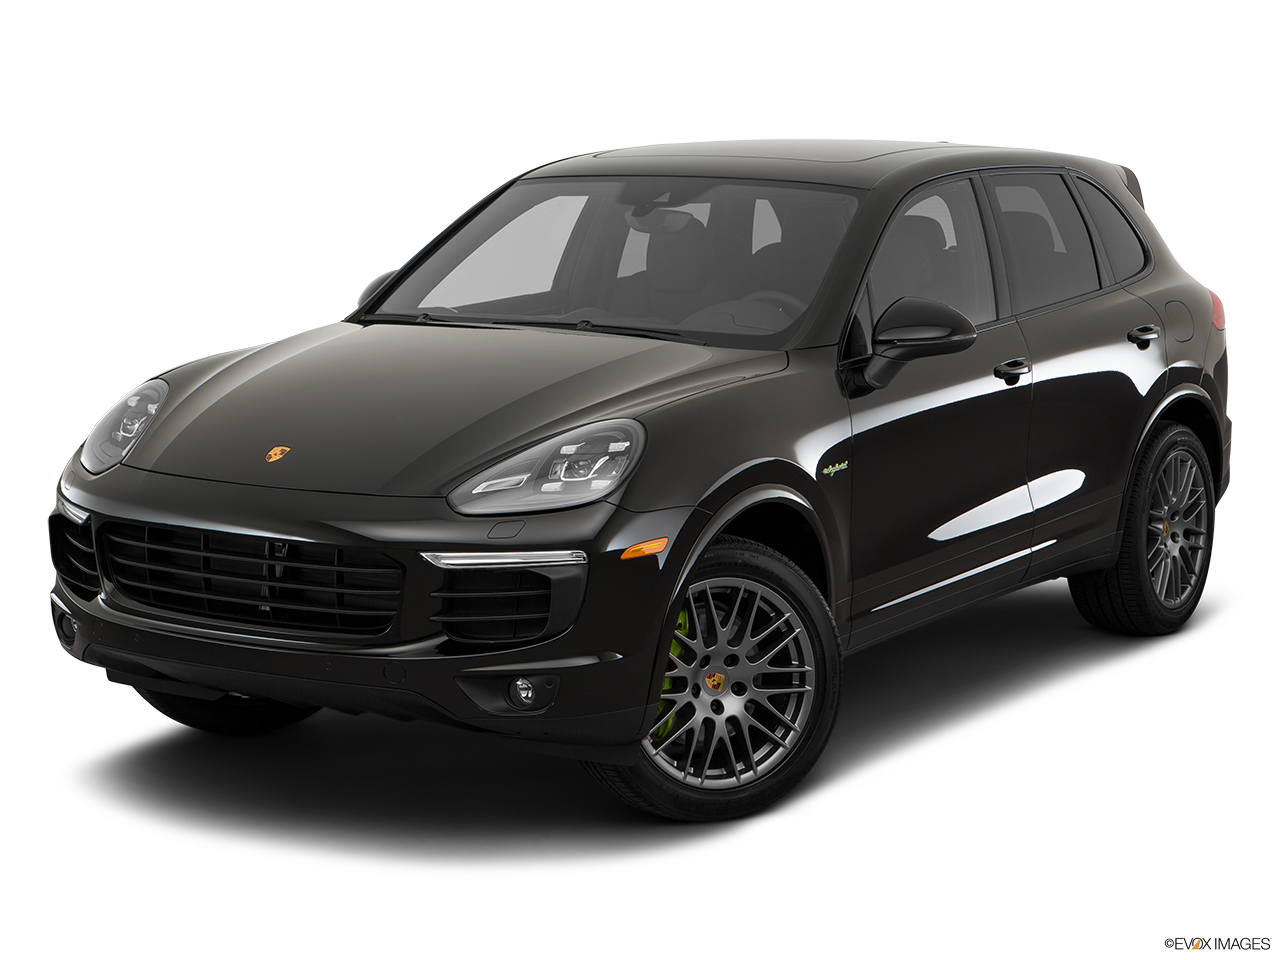 porsche cayenne 2017 s e hybrid platinum edition in uae new car prices specs reviews photos. Black Bedroom Furniture Sets. Home Design Ideas